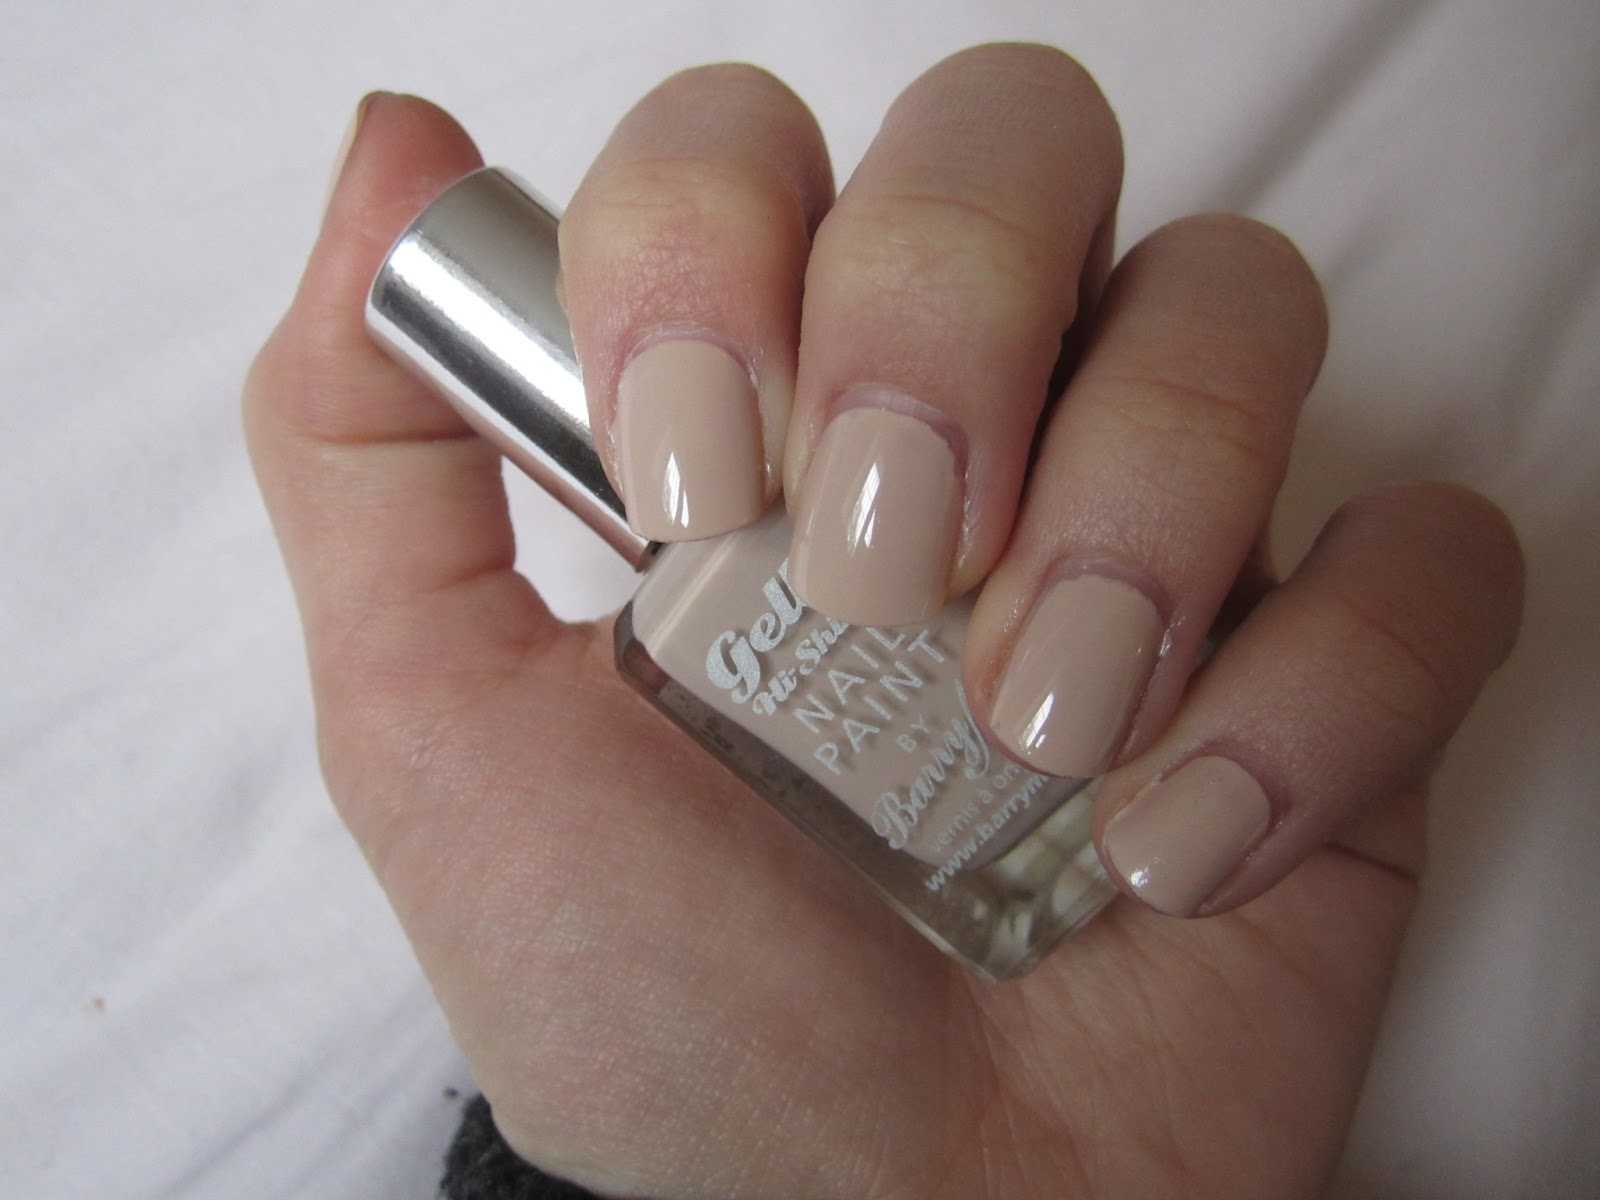 LOLA DOES FASHION: Review | Nailene 200 Full Cover Nails in Petite ...